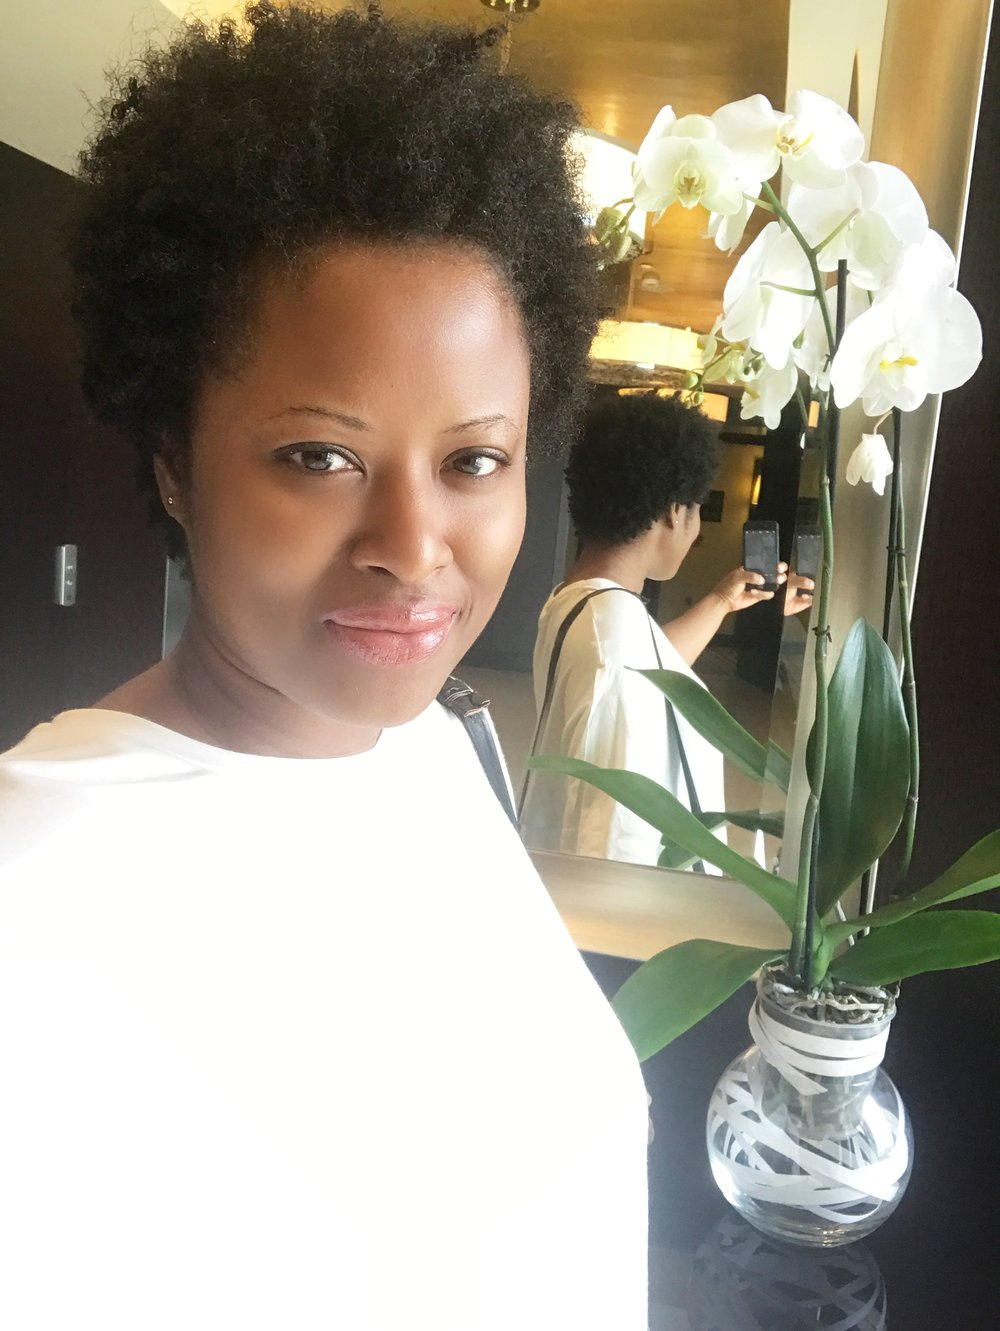 Kempinski-Goldcoast-Accra-Hotel-Review-Photos-vickieremoeofficial12.JPG